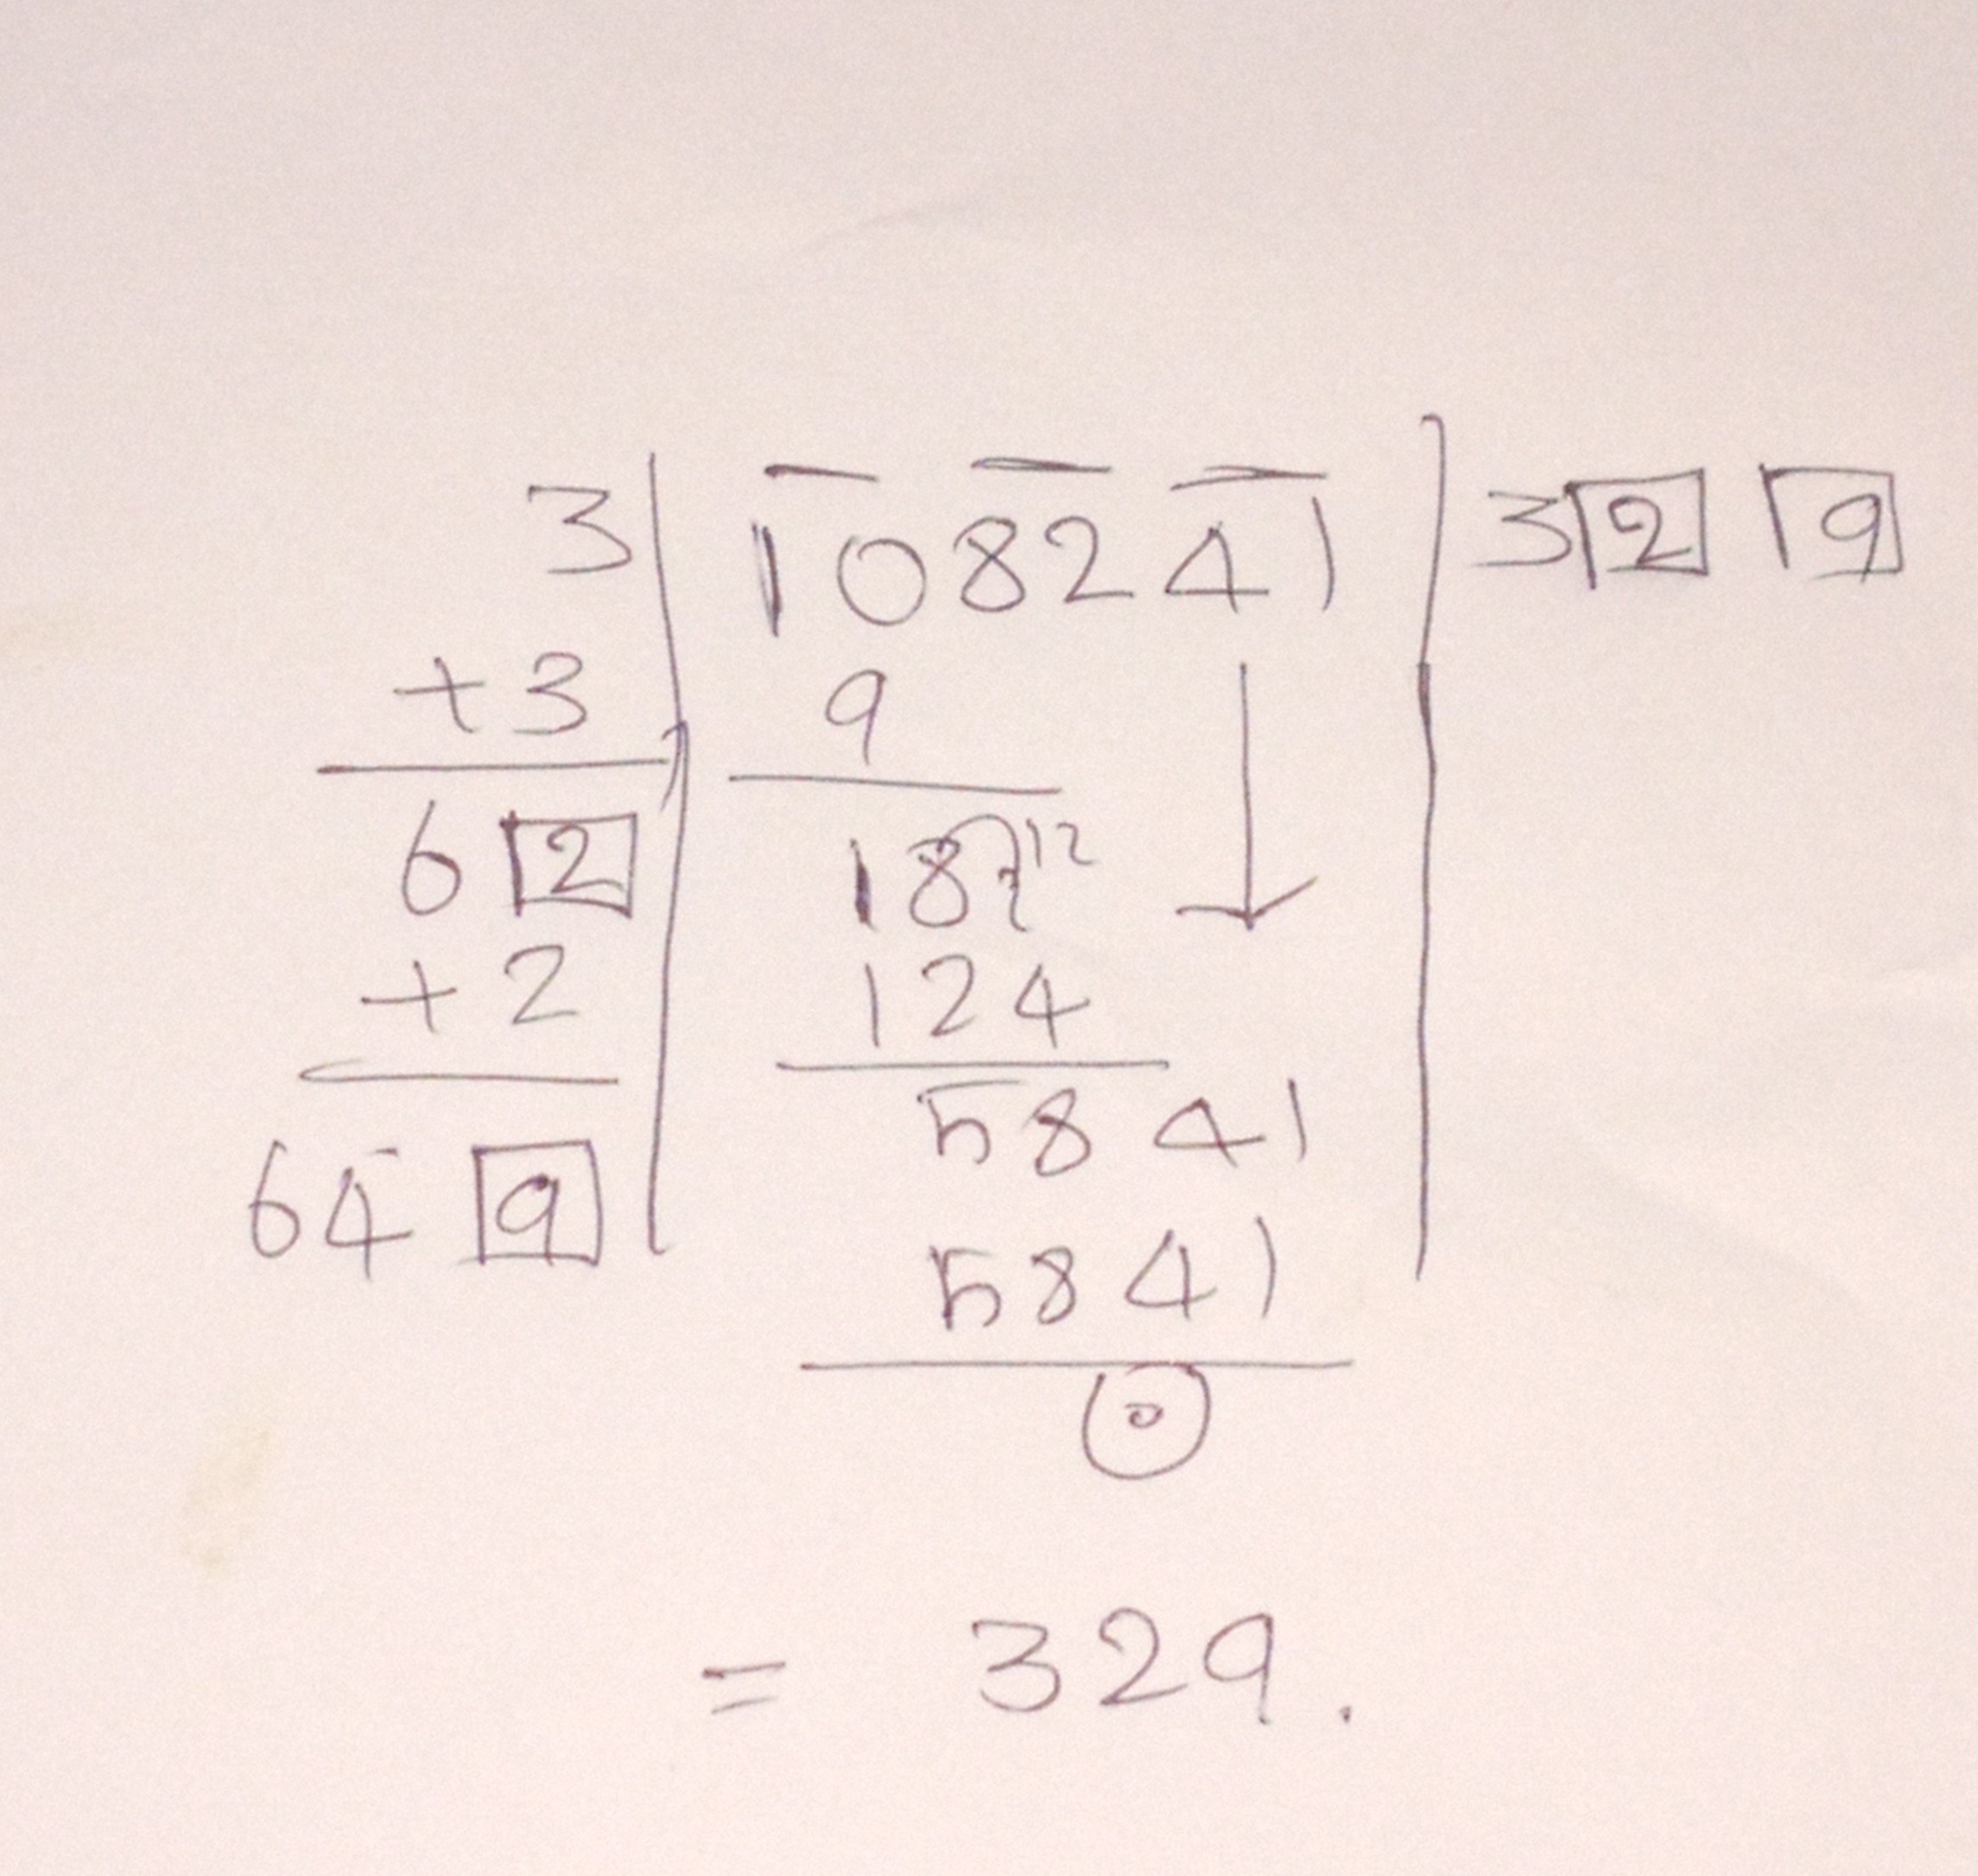 find the square root of 57121 by long division method